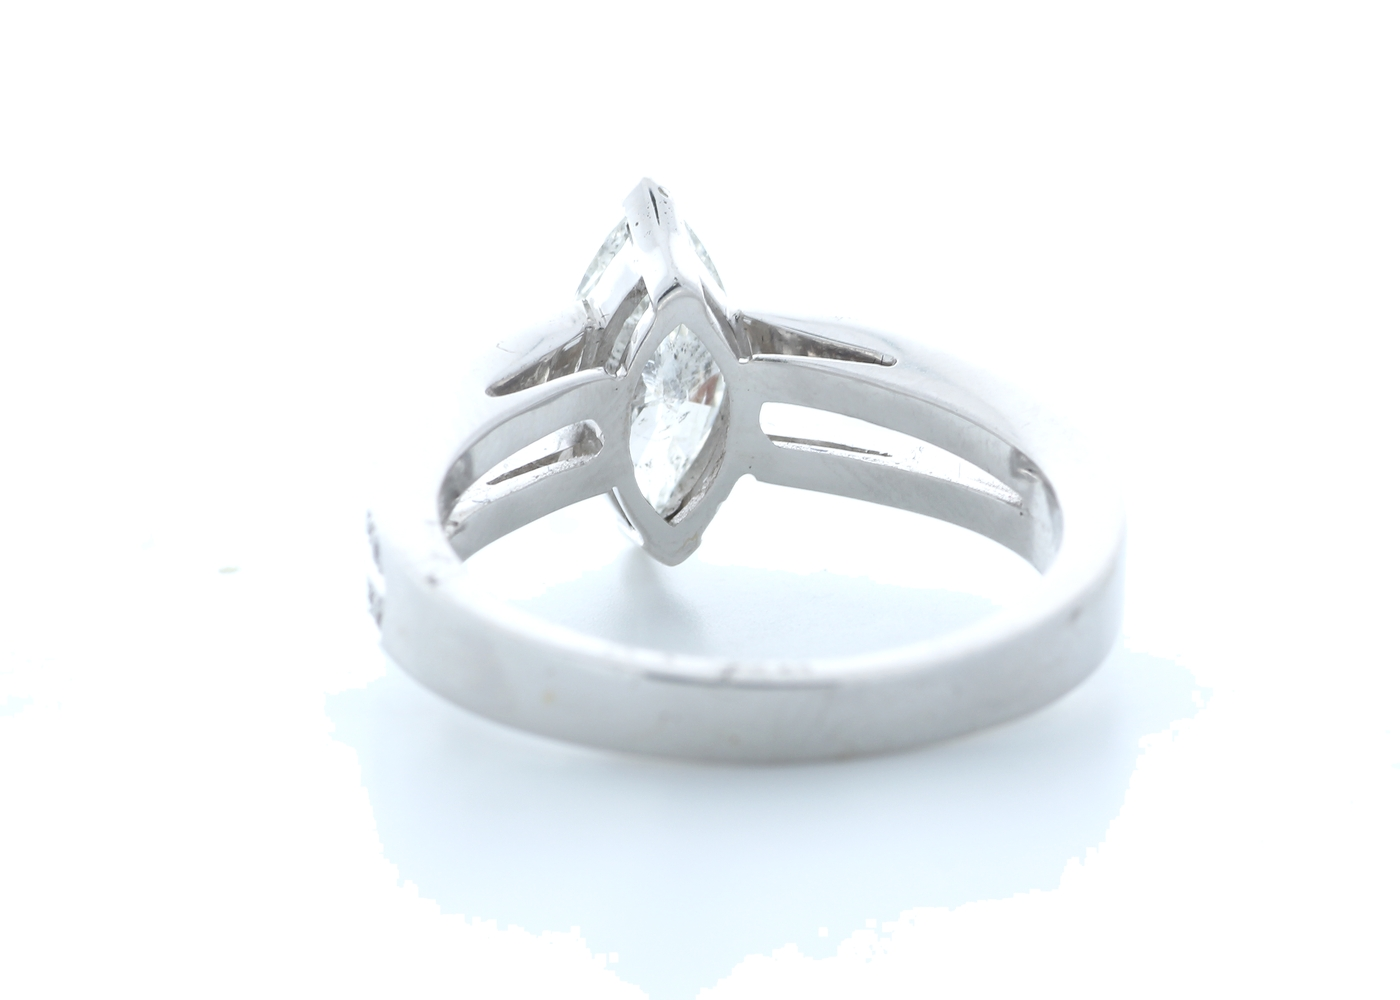 18k White Gold Marquise Cut Diamond Ring 1.41 (1.11) Carats - Image 3 of 5